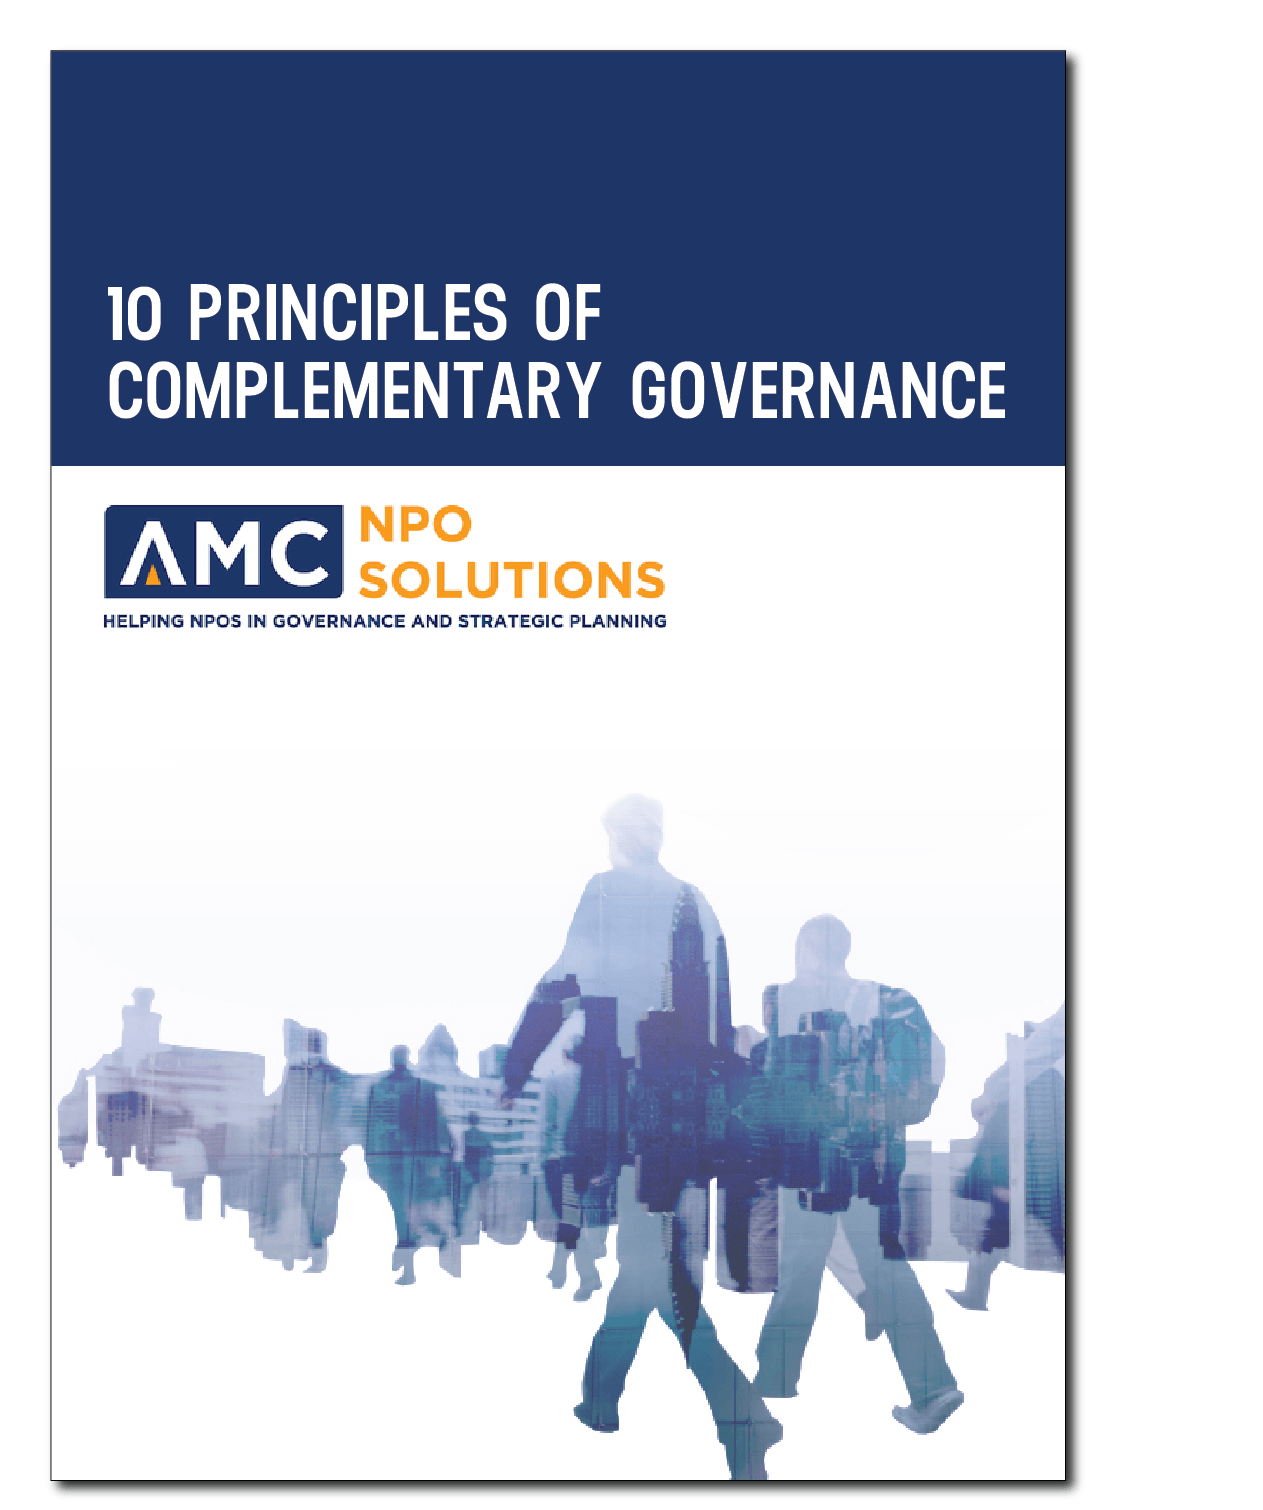 10 Principles of complementary governace